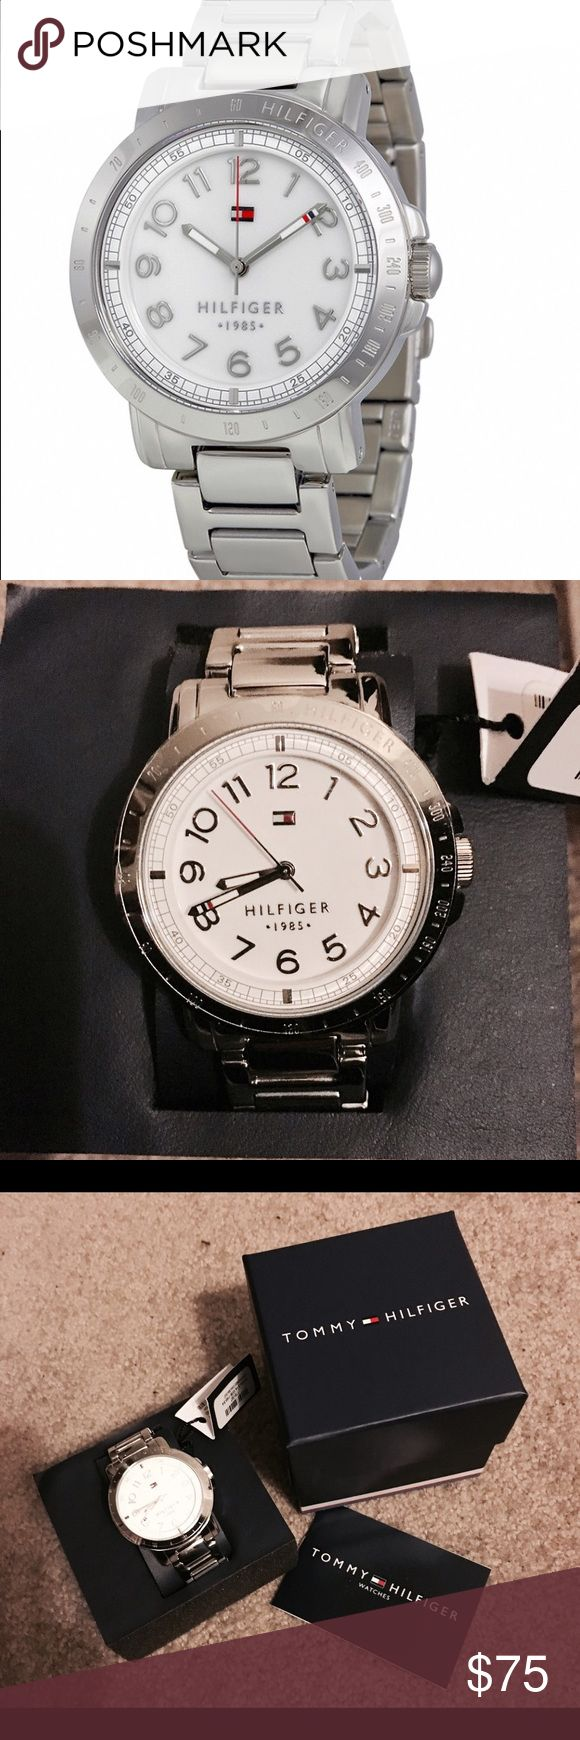 Tommy Hilfiger Stainless Steel 38mm Watch NWT Tommy Hilfiger Stainless Steel 38mm Watch NWT. Model#1781397. Never worn. Comes with box , tags, info card, and box sleeve. Tommy Hilfiger Accessories Watches